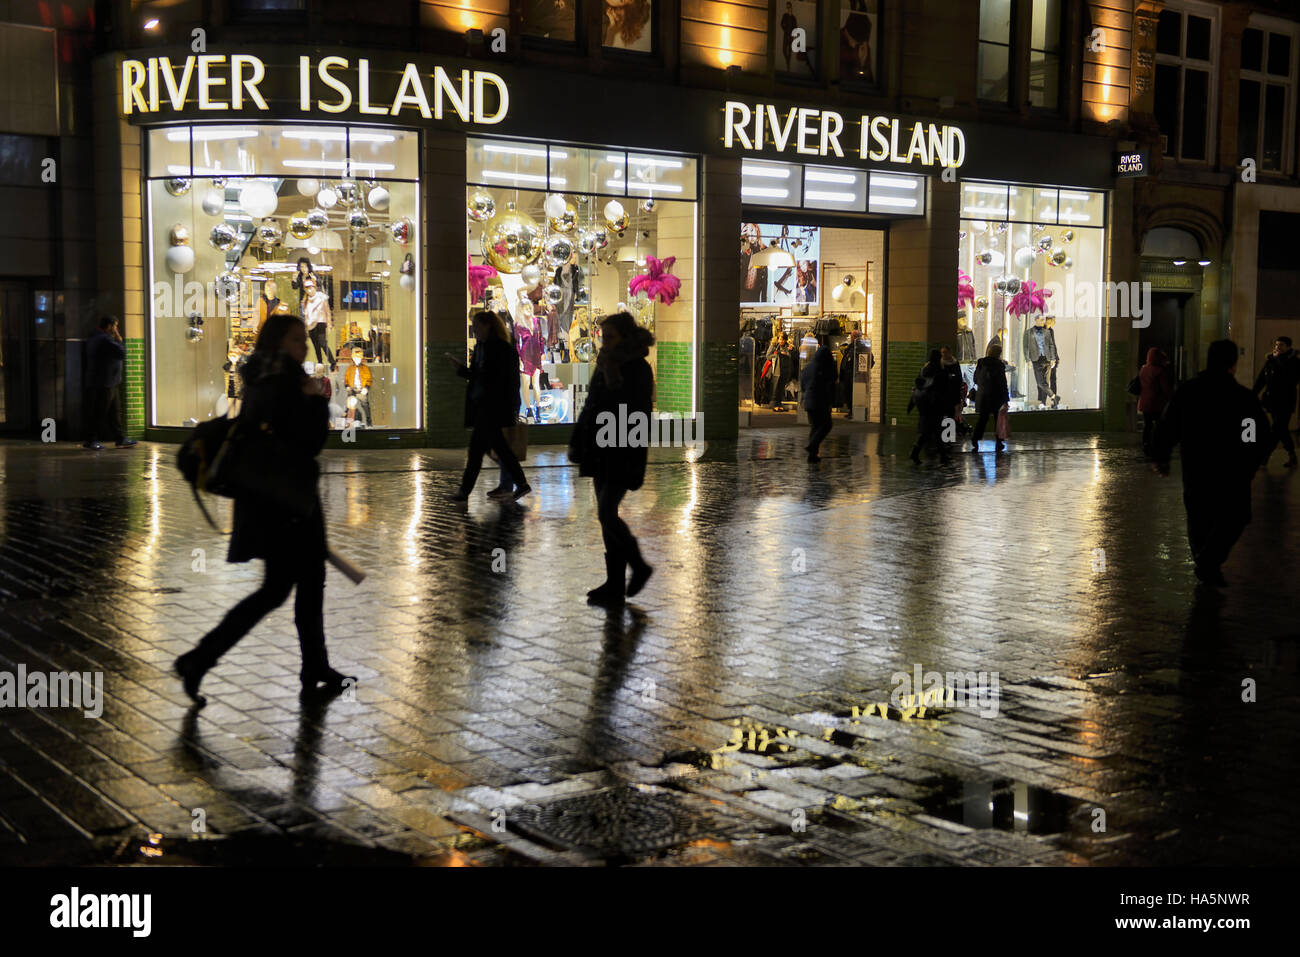 River Island fashion clothing store at night in Liverpool Stock Photo